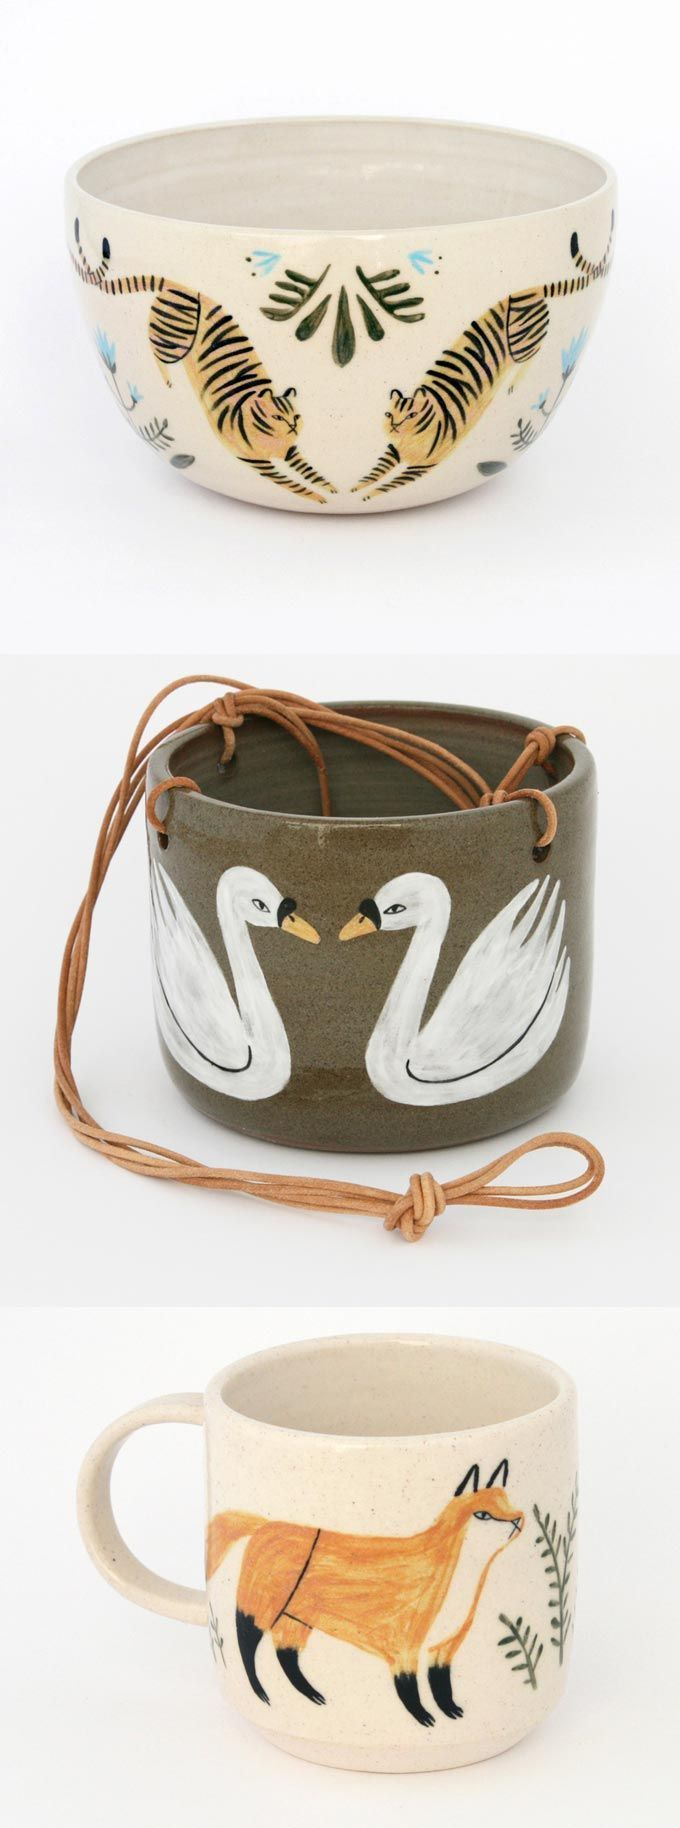 Keep Company is a collaboration between Jen Collins and ceramicist Shaya Stevenson. Each piece is wheelthrown by Shaya and then glazed by Jen.: